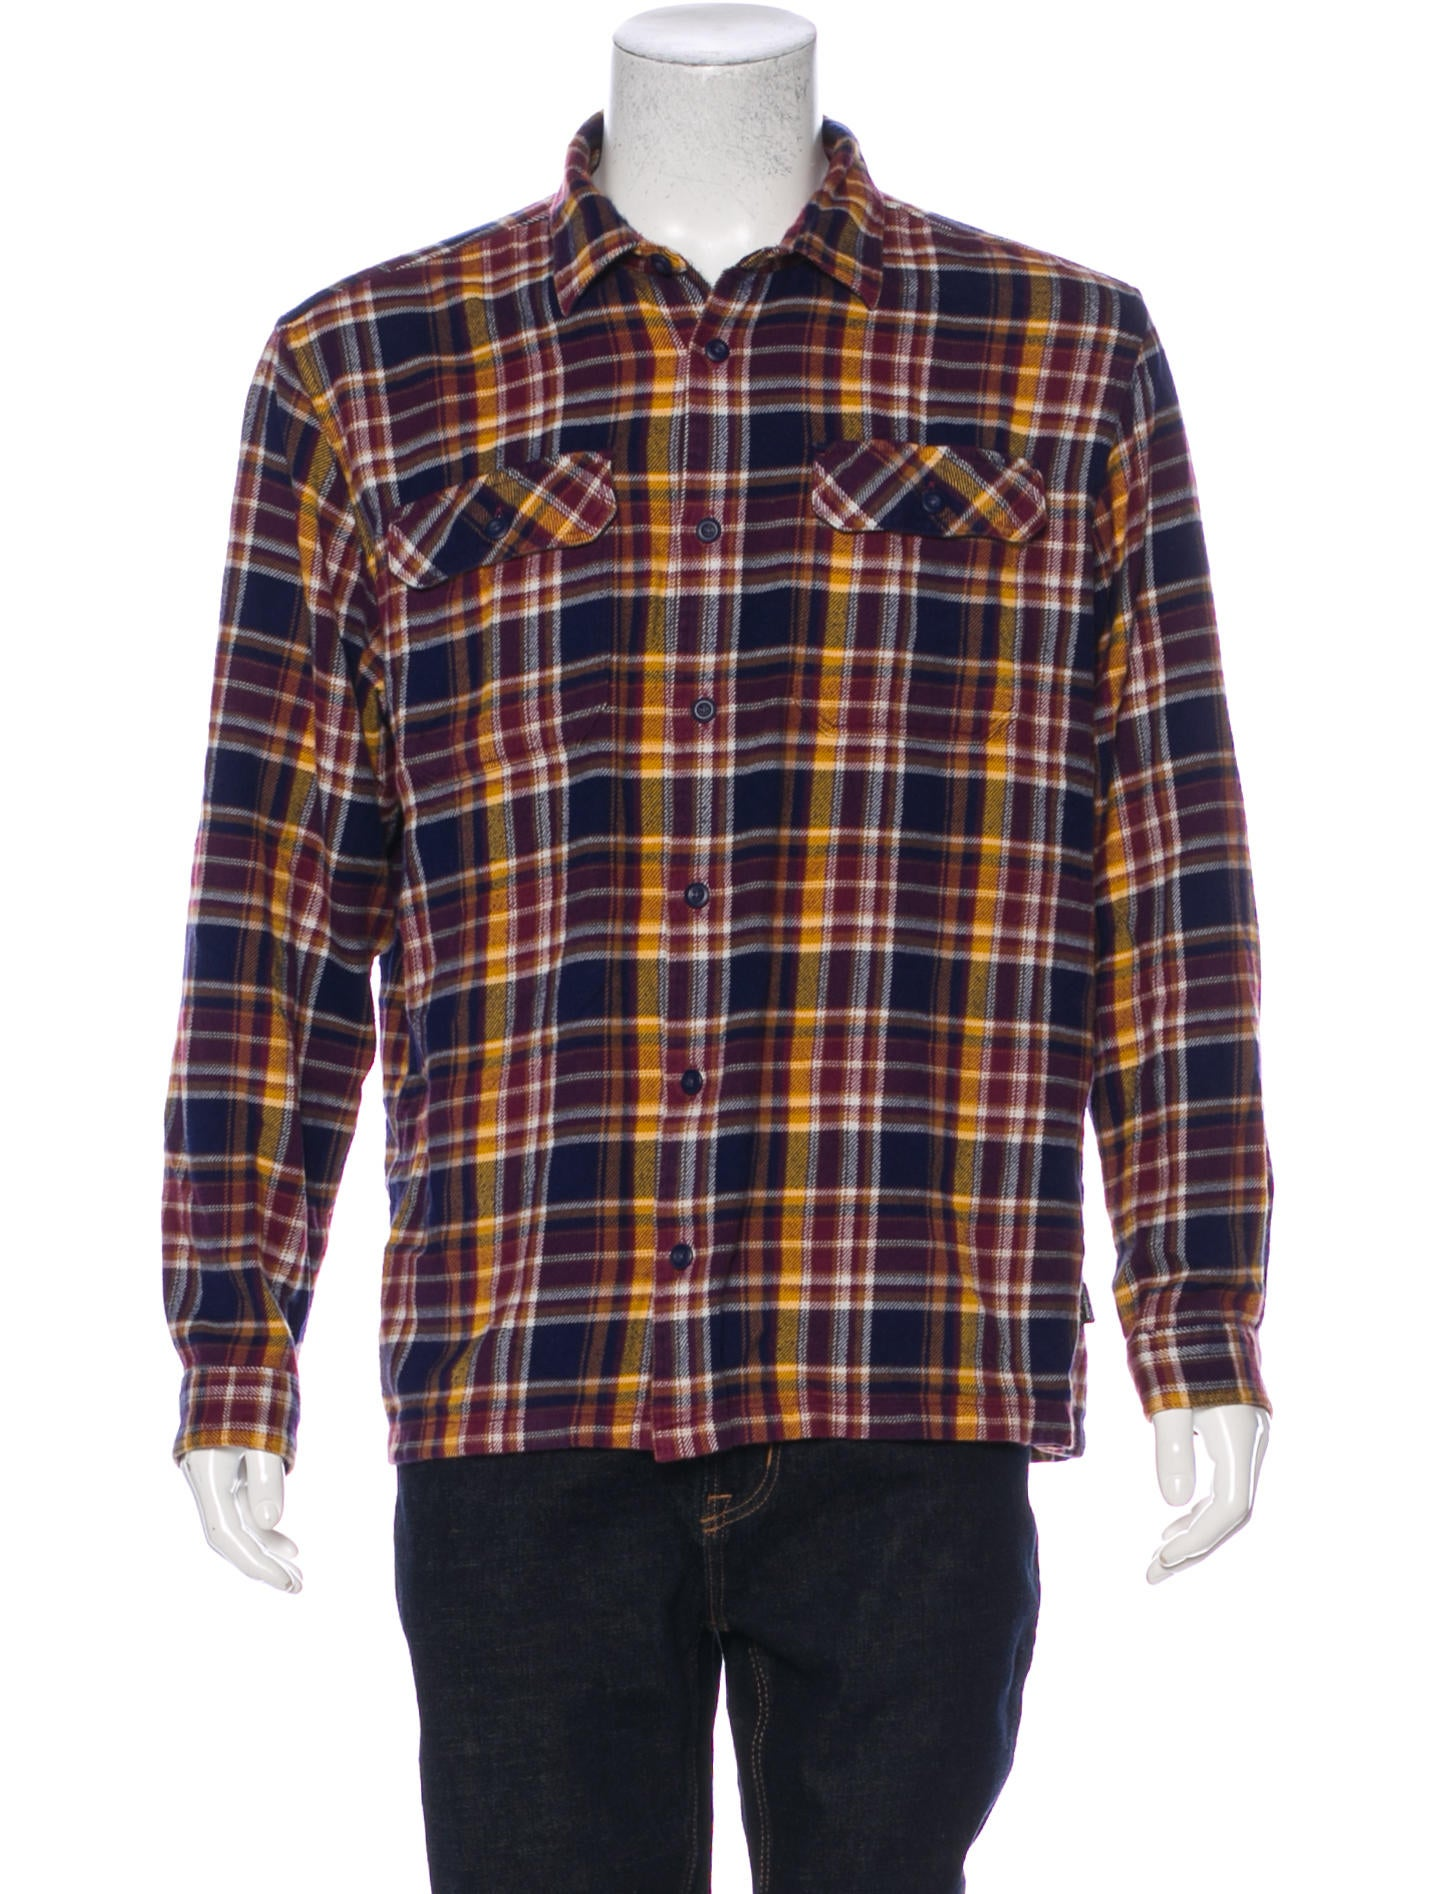 91d6bbf52a37 Patagonia Flannel Button-Up Shirt - Clothing - WPATG21981